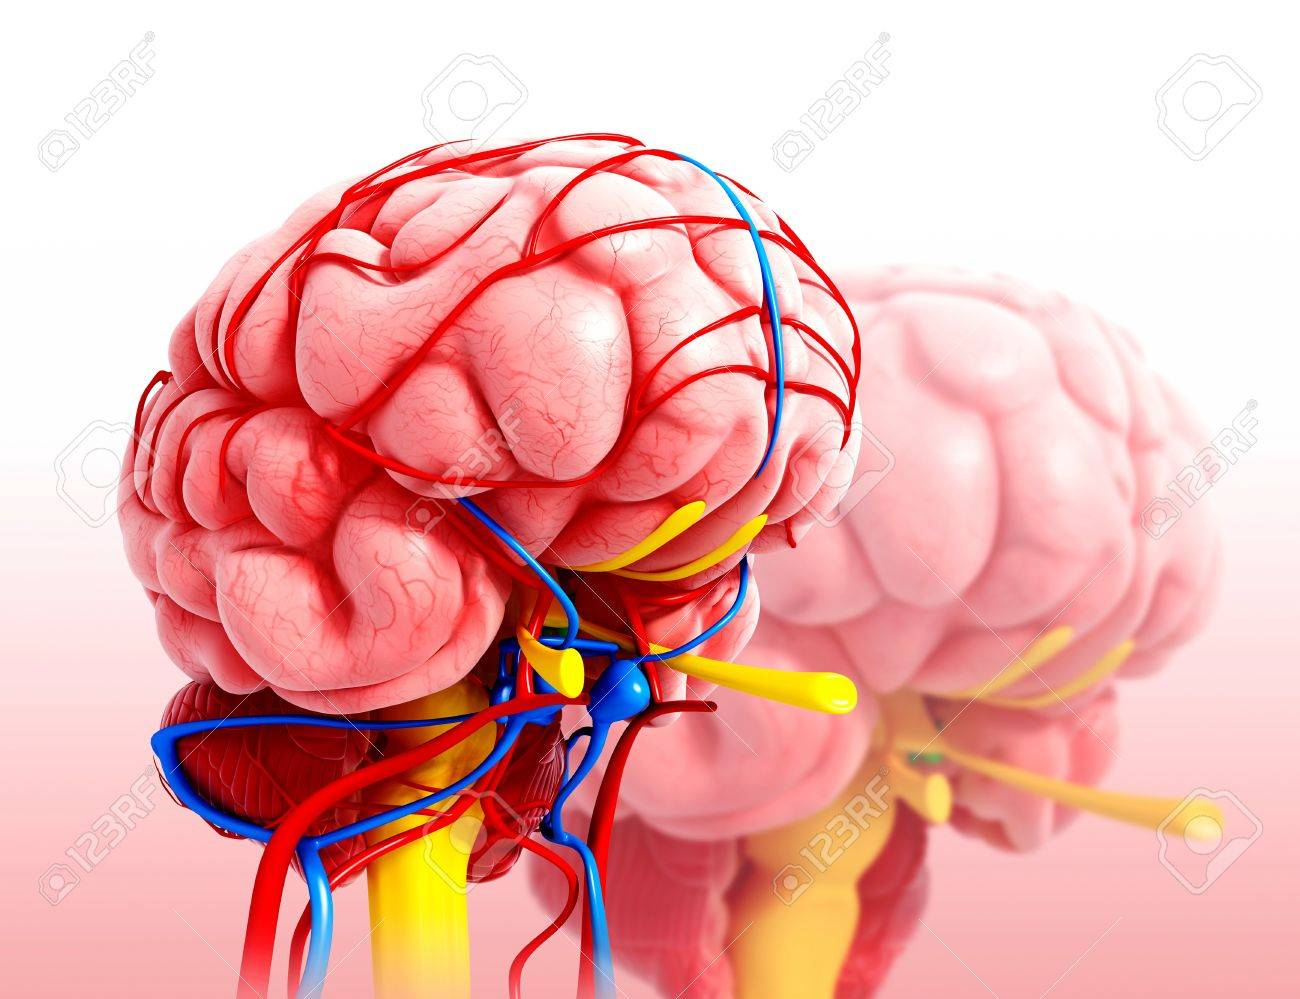 Human Brain Anatomy,artwork Stock Photo, Picture And Royalty Free ...